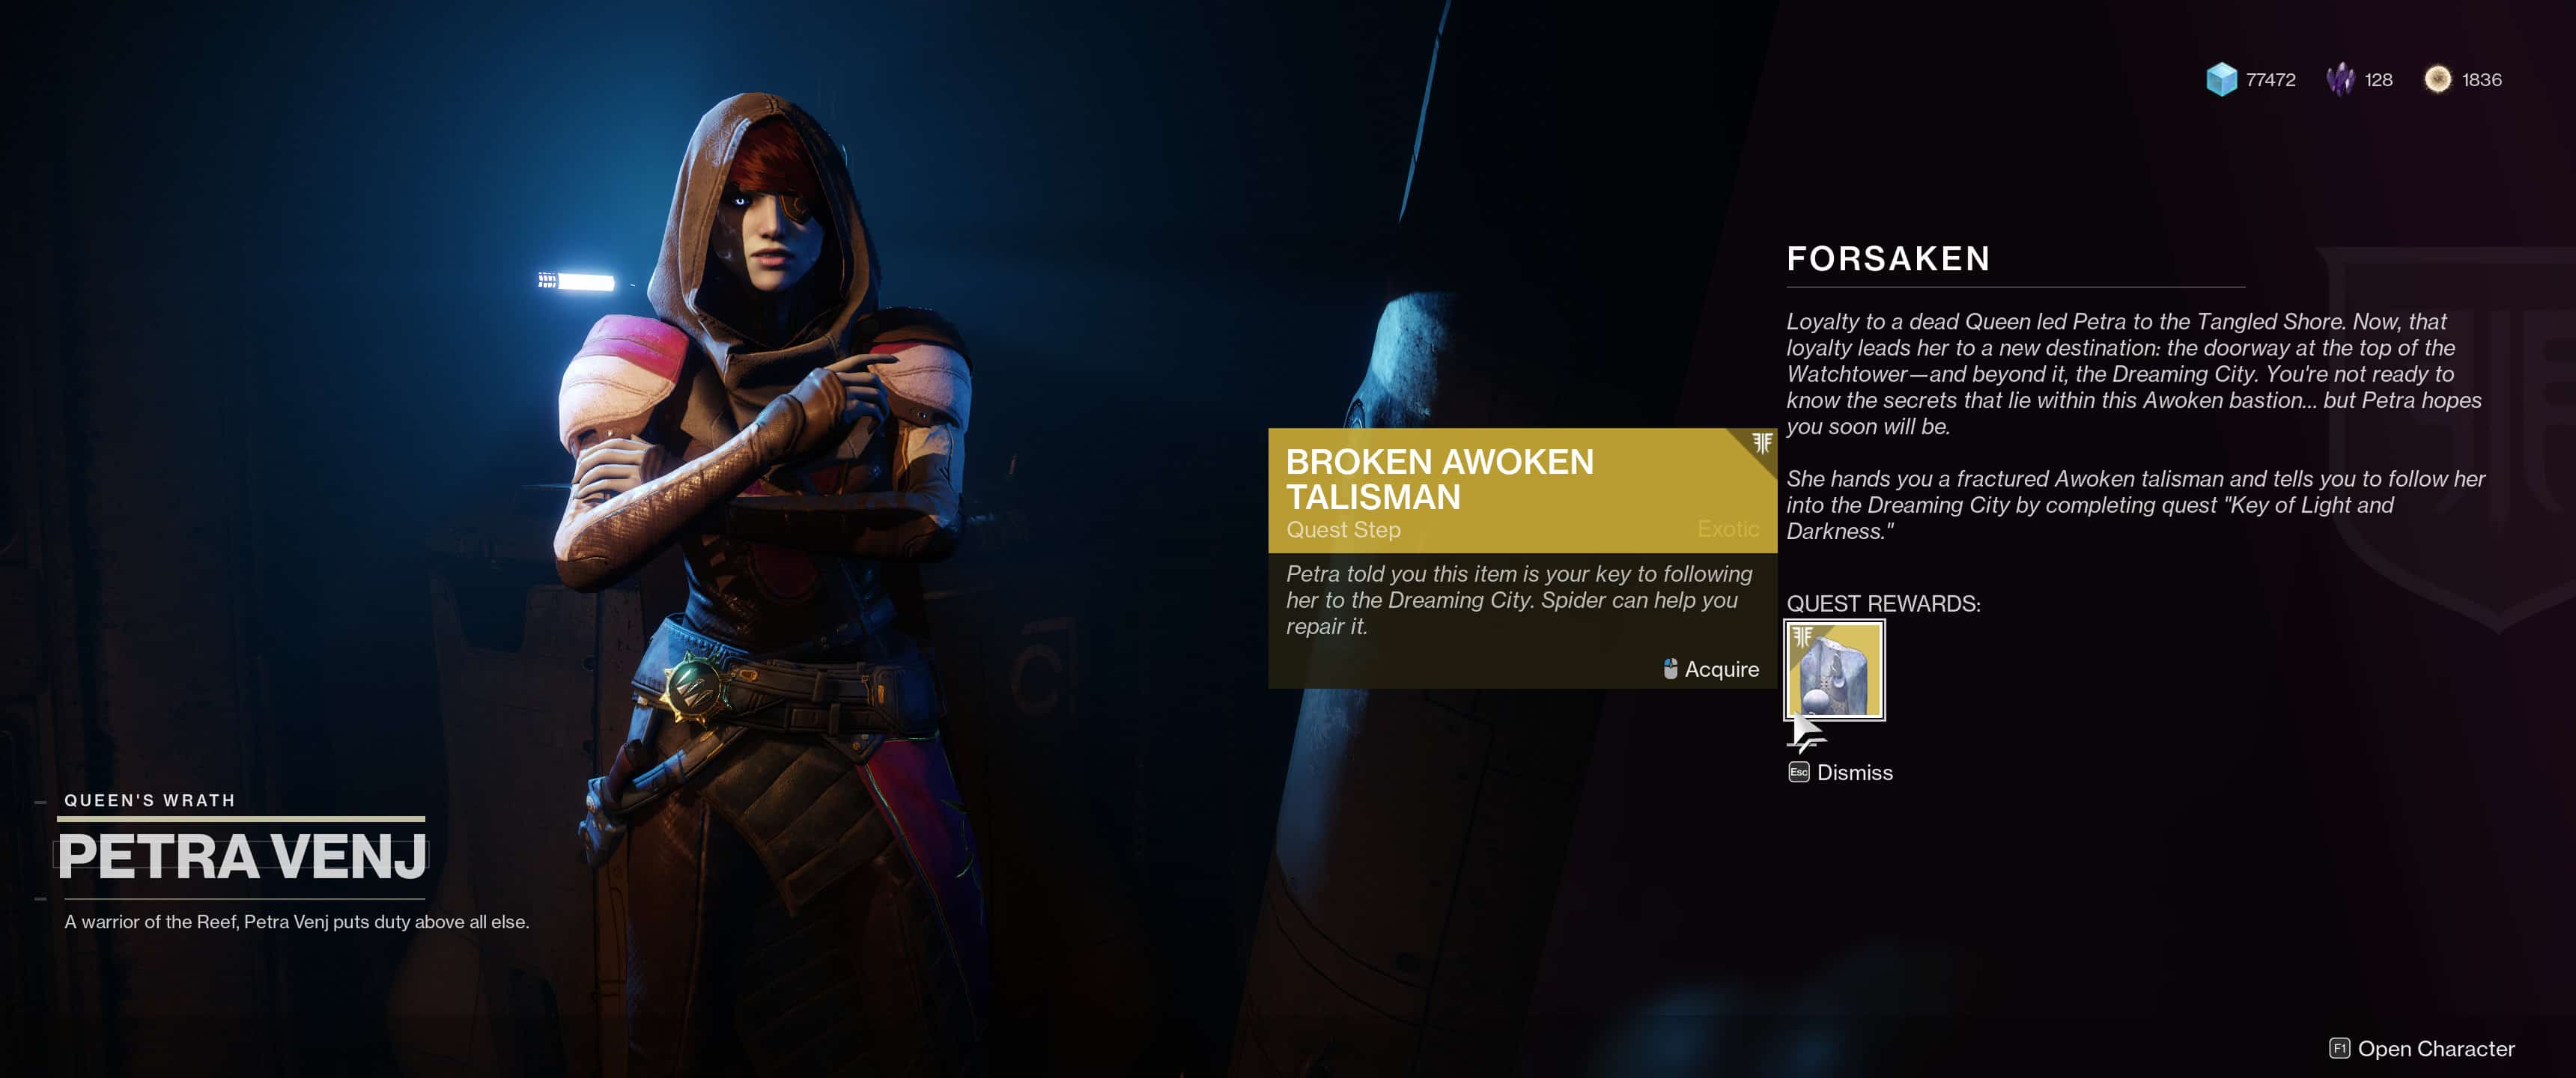 Repair the Broken Awoken Talisman & Unlock the Dreaming City